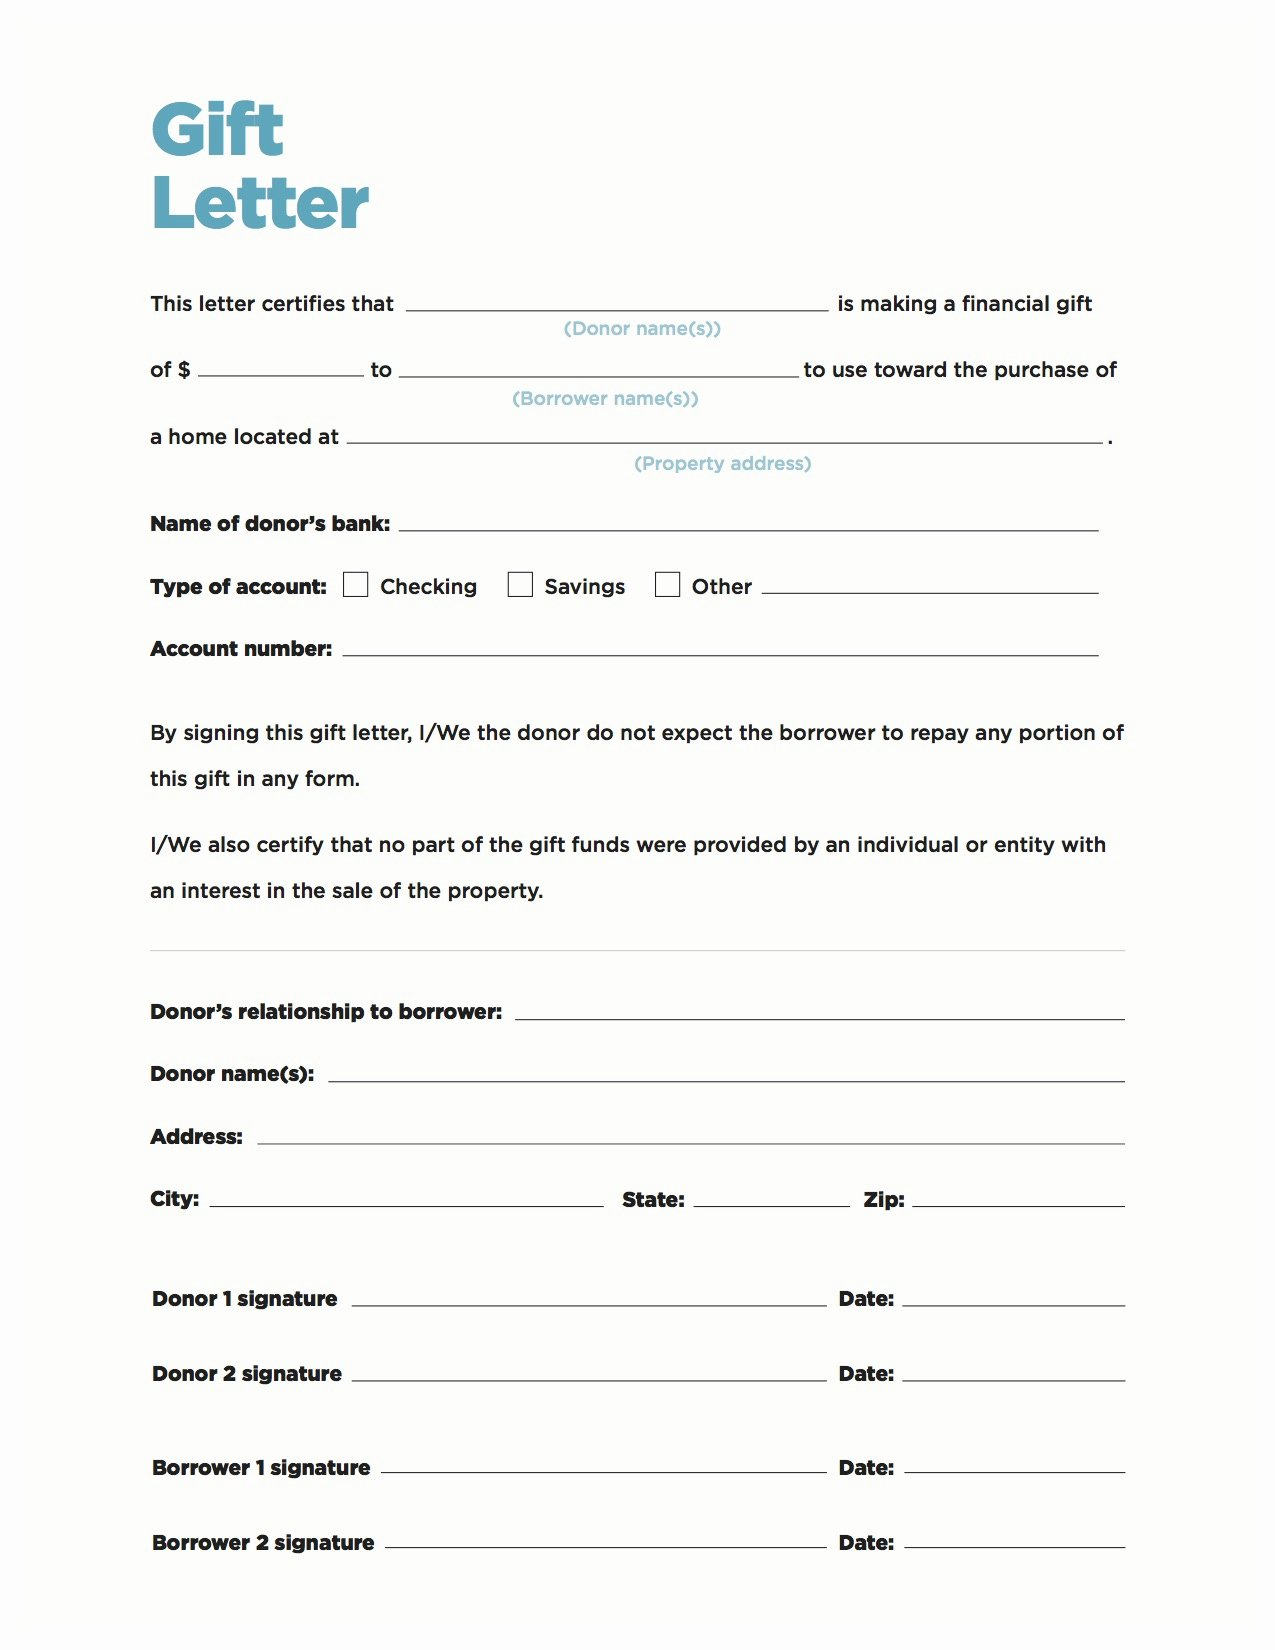 Mortgage Gift Letter Template Elegant Gift Money Can Meet Your Down Payment Needs Nerdwallet